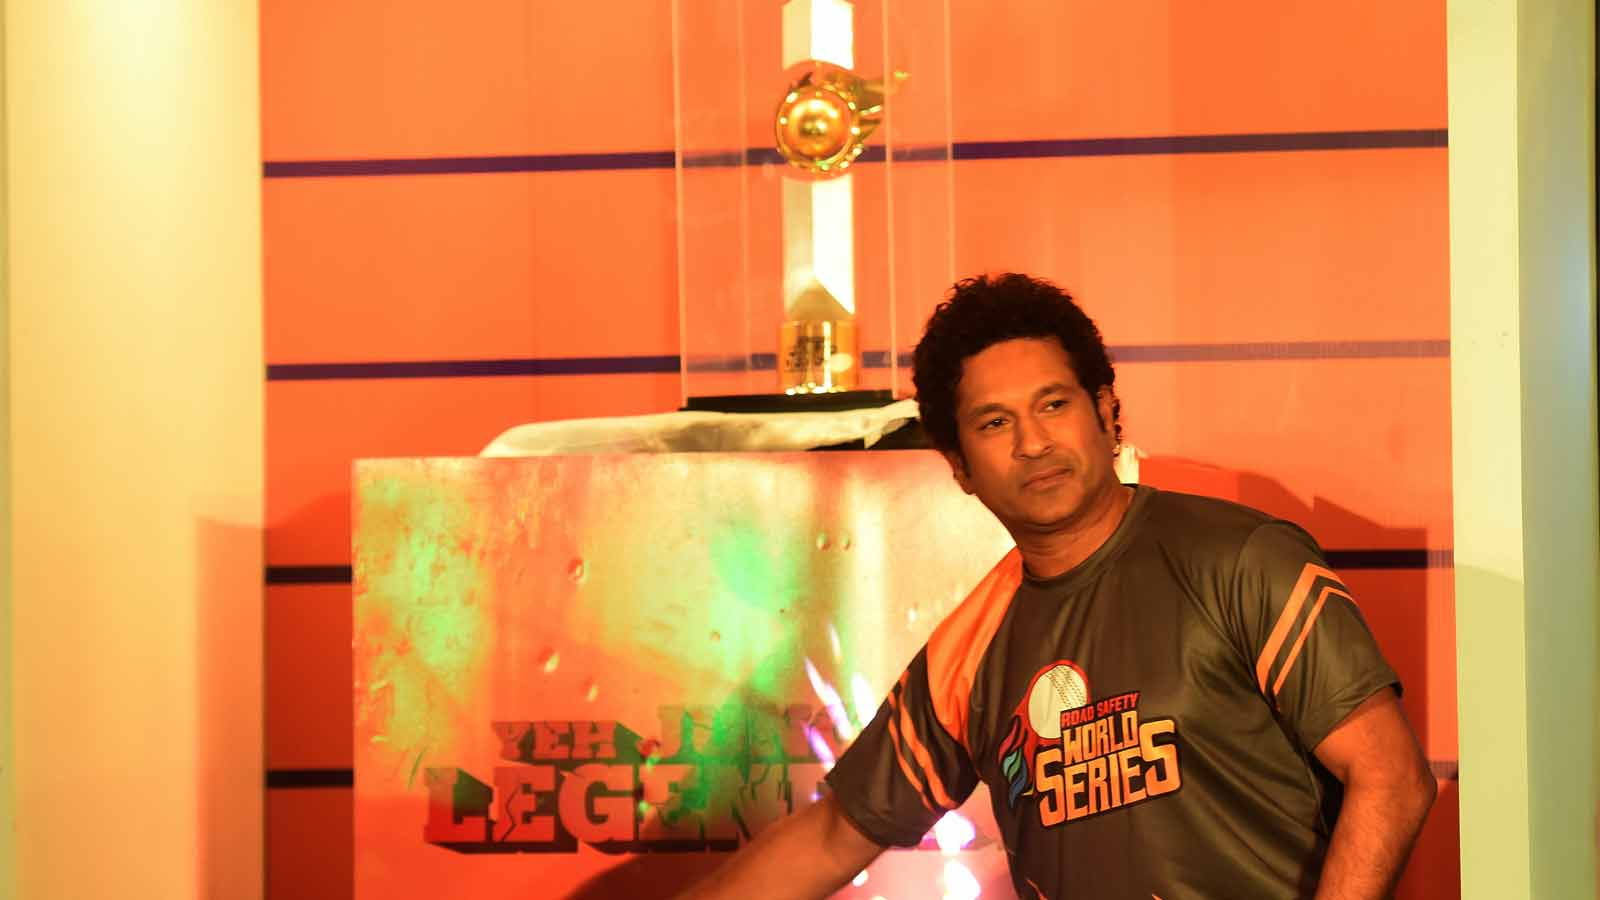 we-are-becoming-impatient-nowadays-says-sachin-tendulkar-on-road-safety